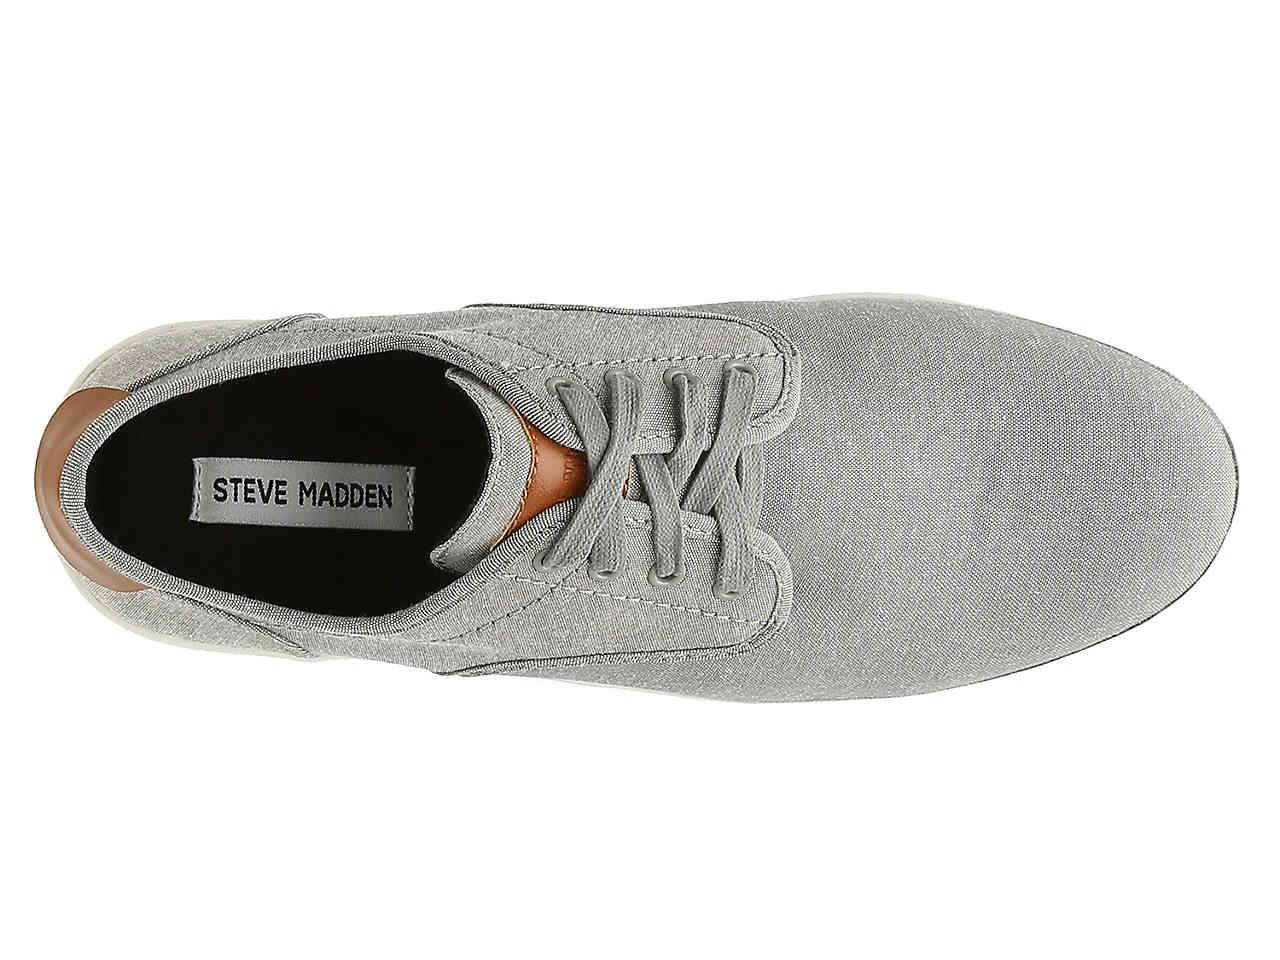 7ddb468c60c Steve Madden - Gray Fenta Fashion Sneaker for Men - Lyst. View fullscreen